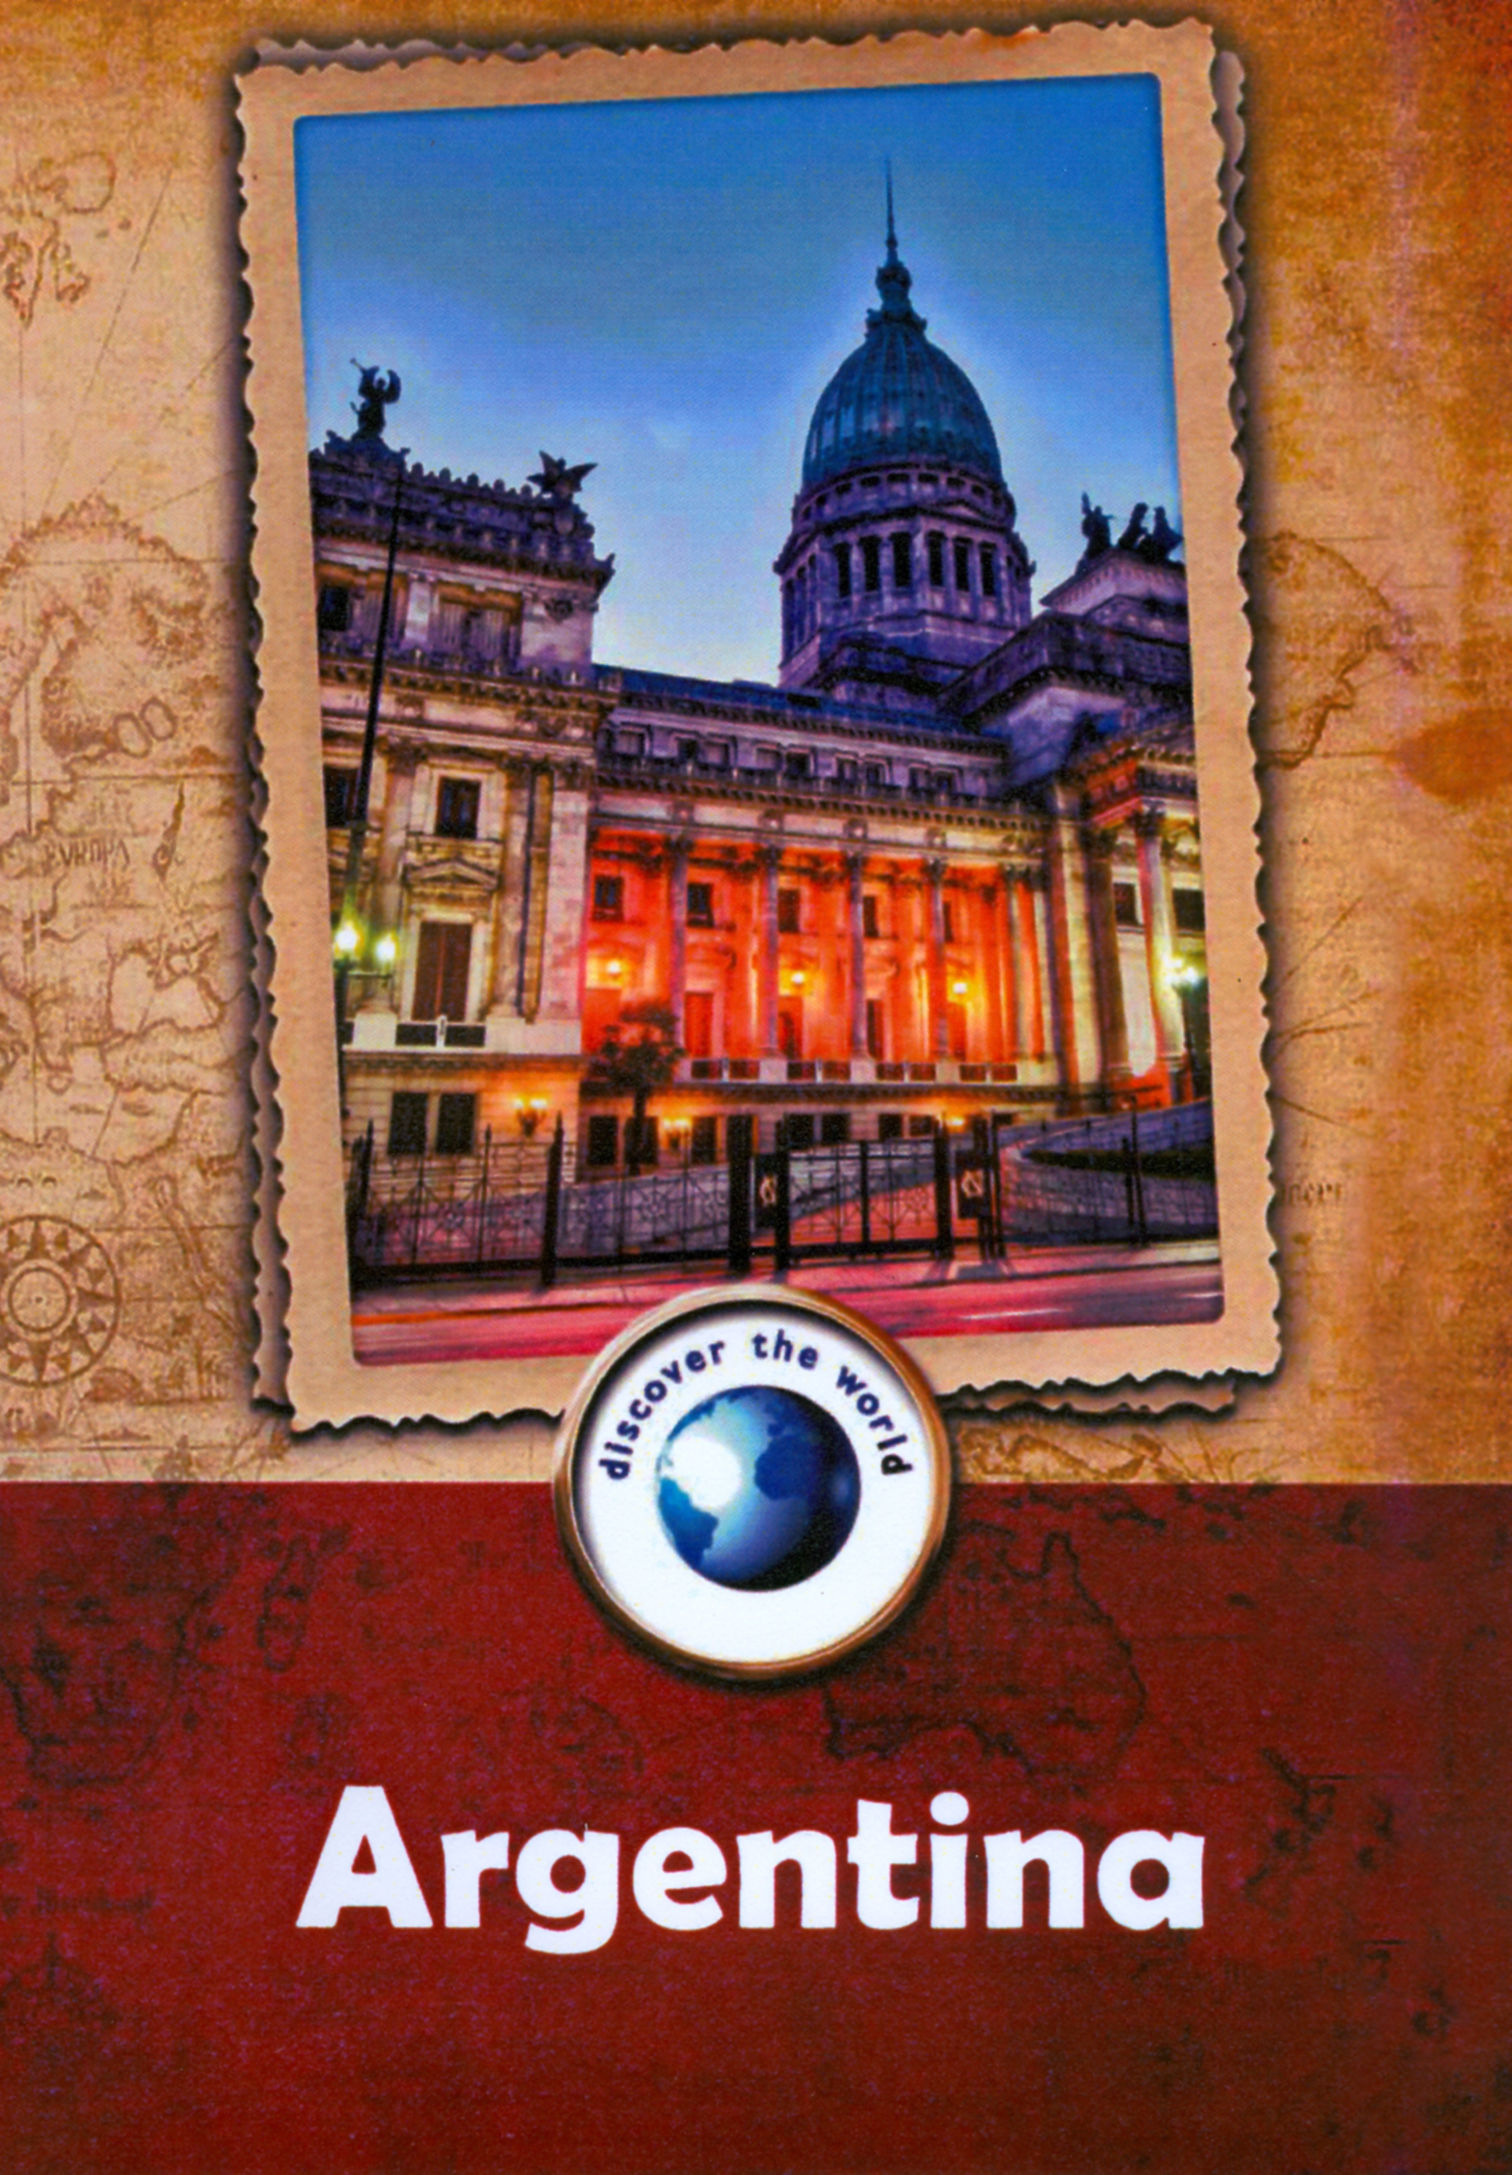 Discover the World: Argentina